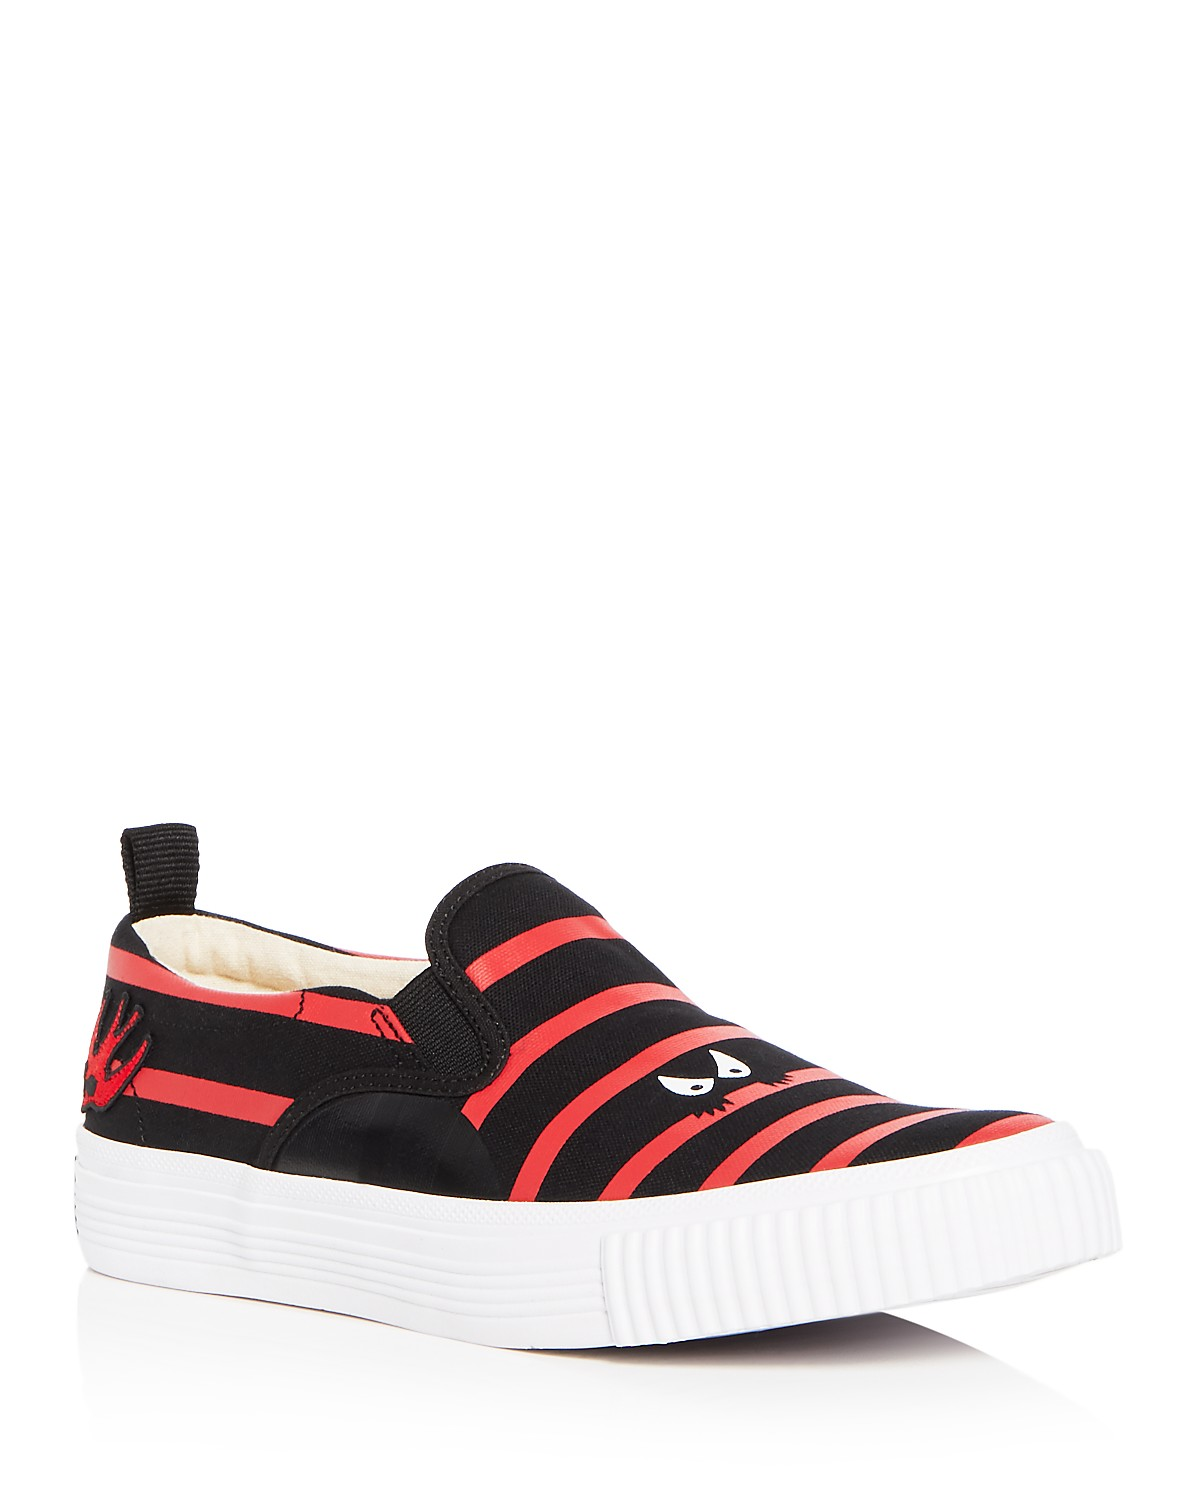 Official Outlet McQ Alexander McQueen Platform slip on sneakers sms 37738